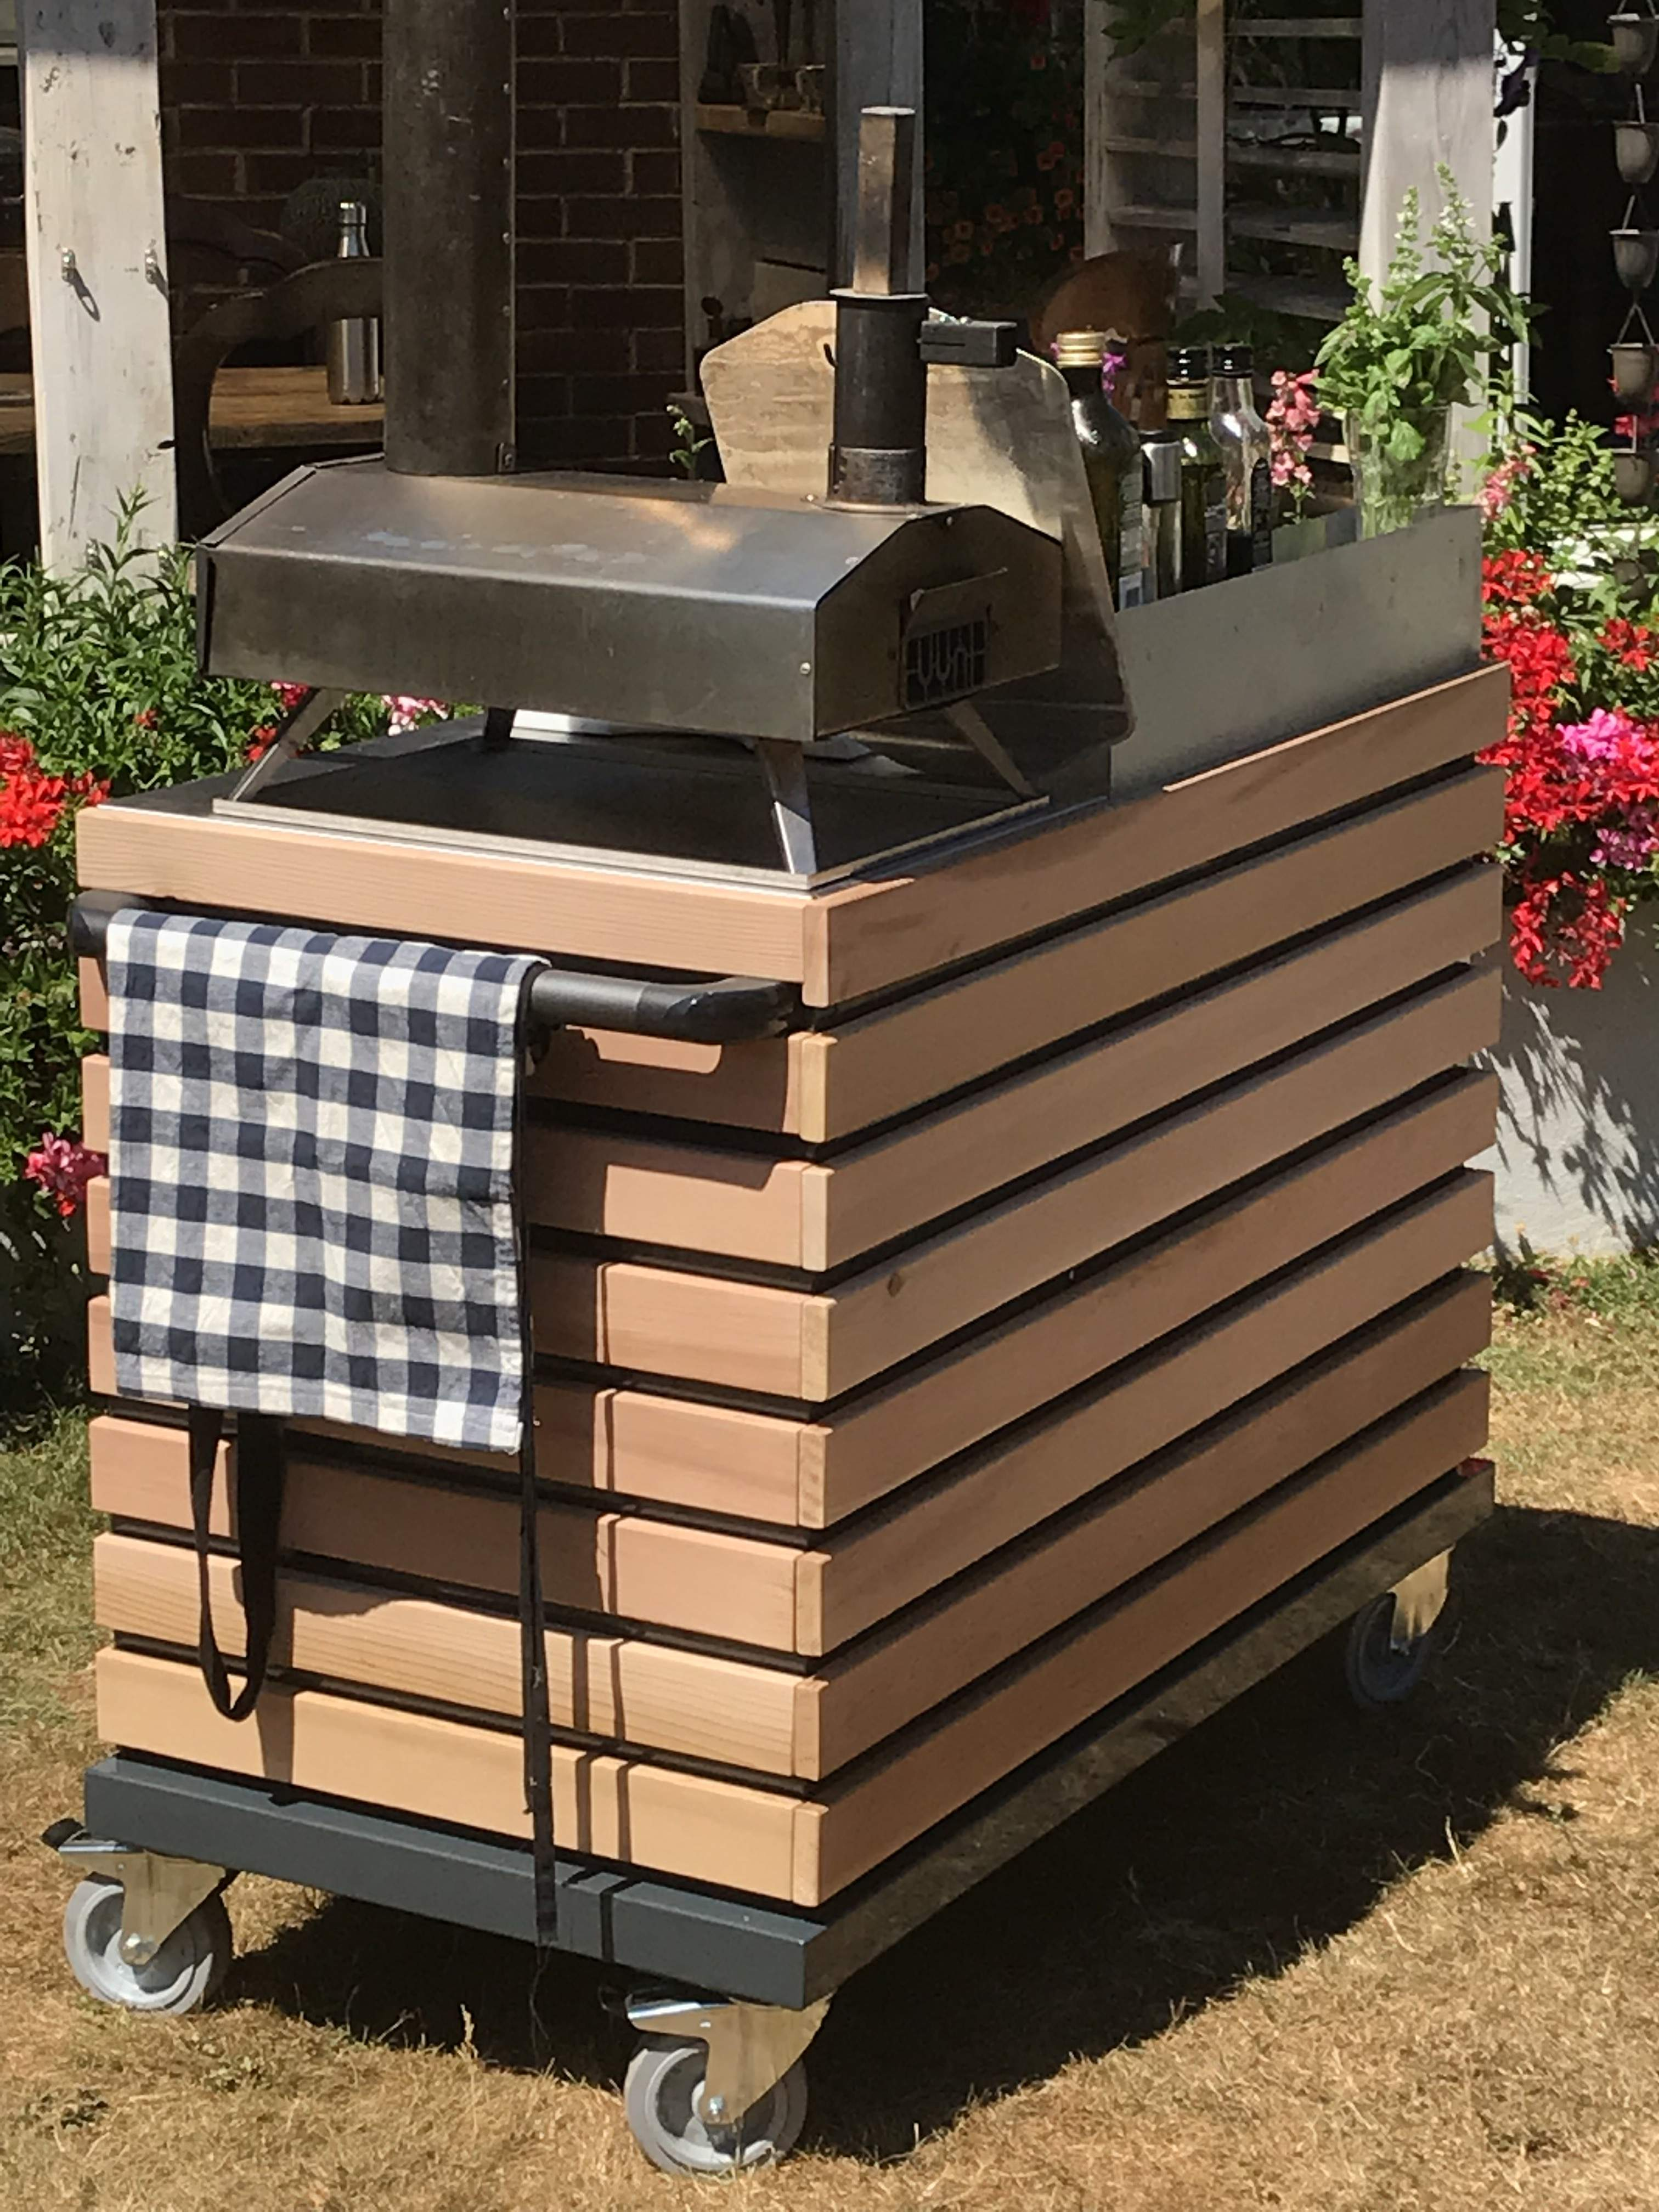 Garden Kitchens UK | Links | Outdoor Kitchens | Pizza Ovens